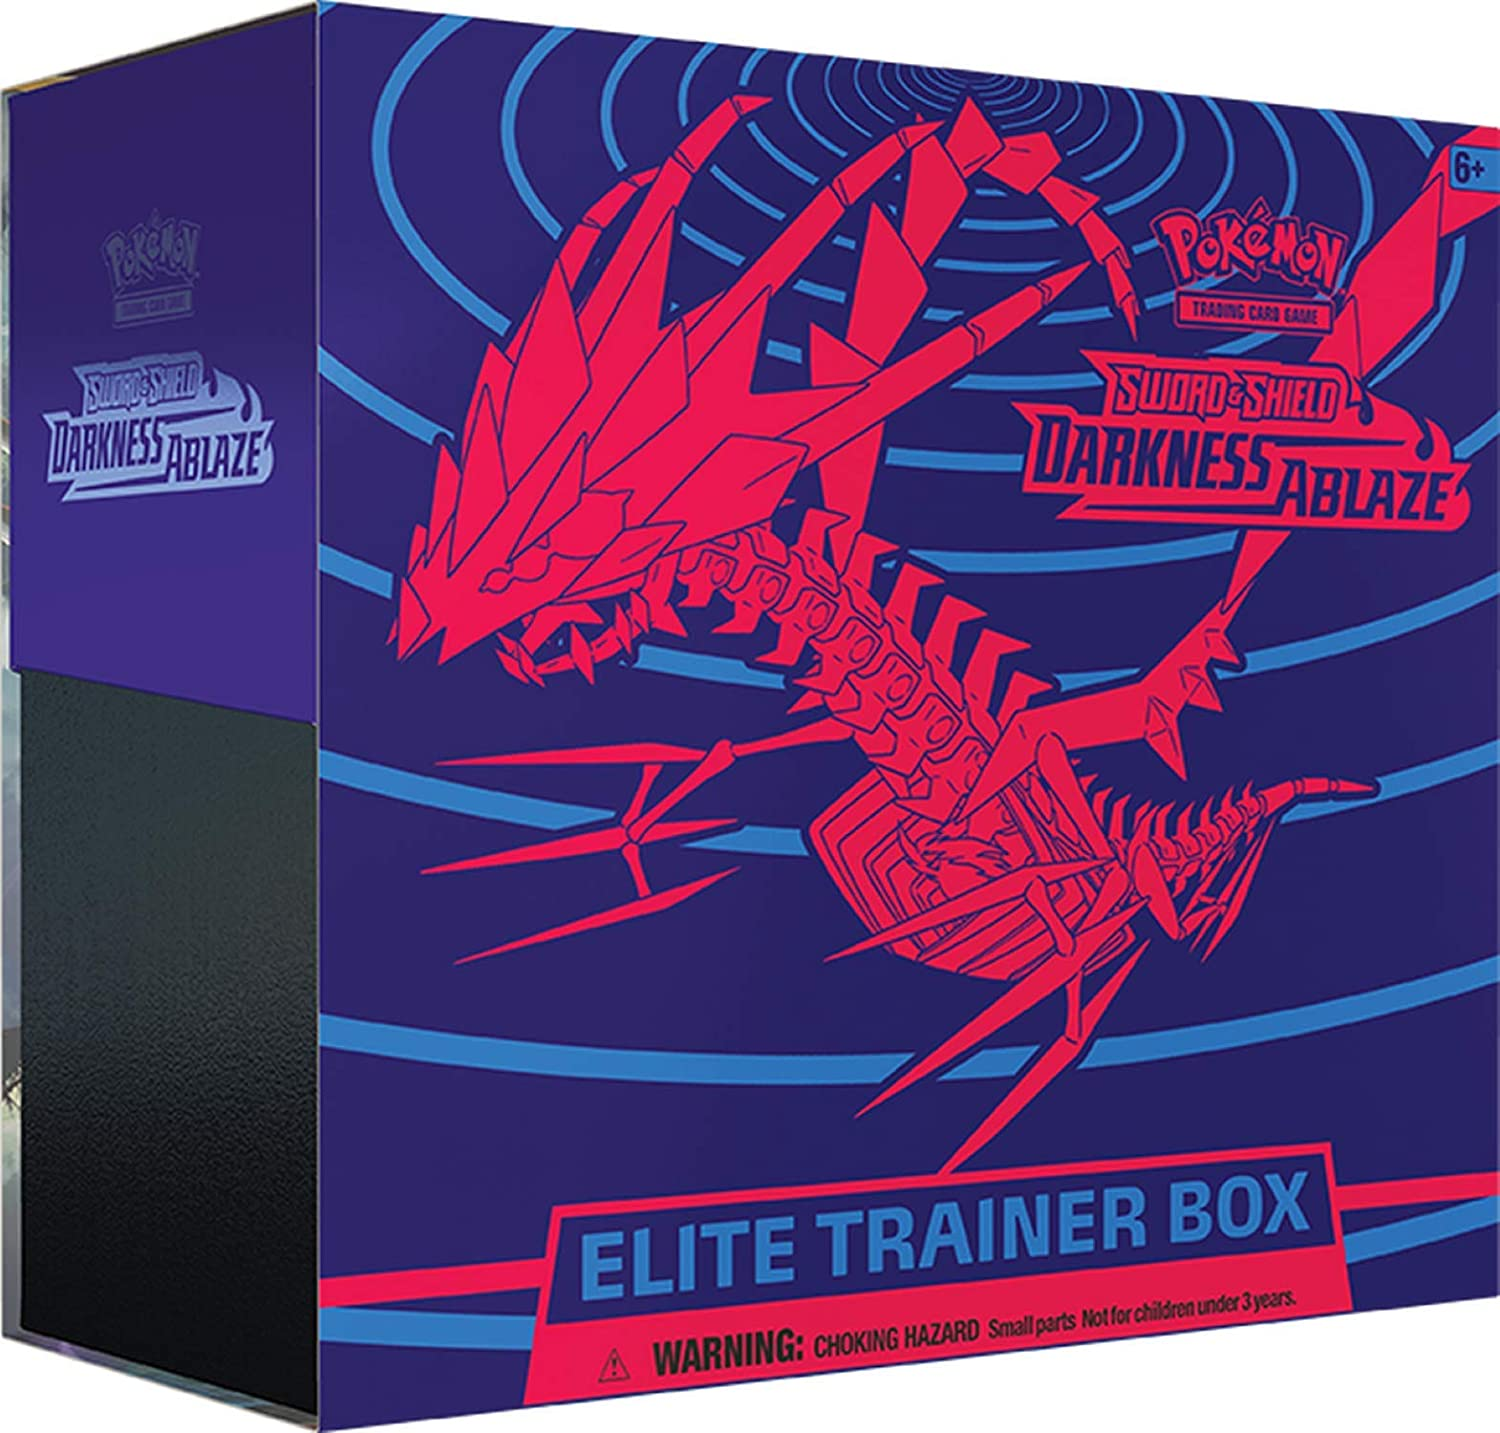 Pokemon Sword & Shield - Darkness Ablaze Elite Trainer Box